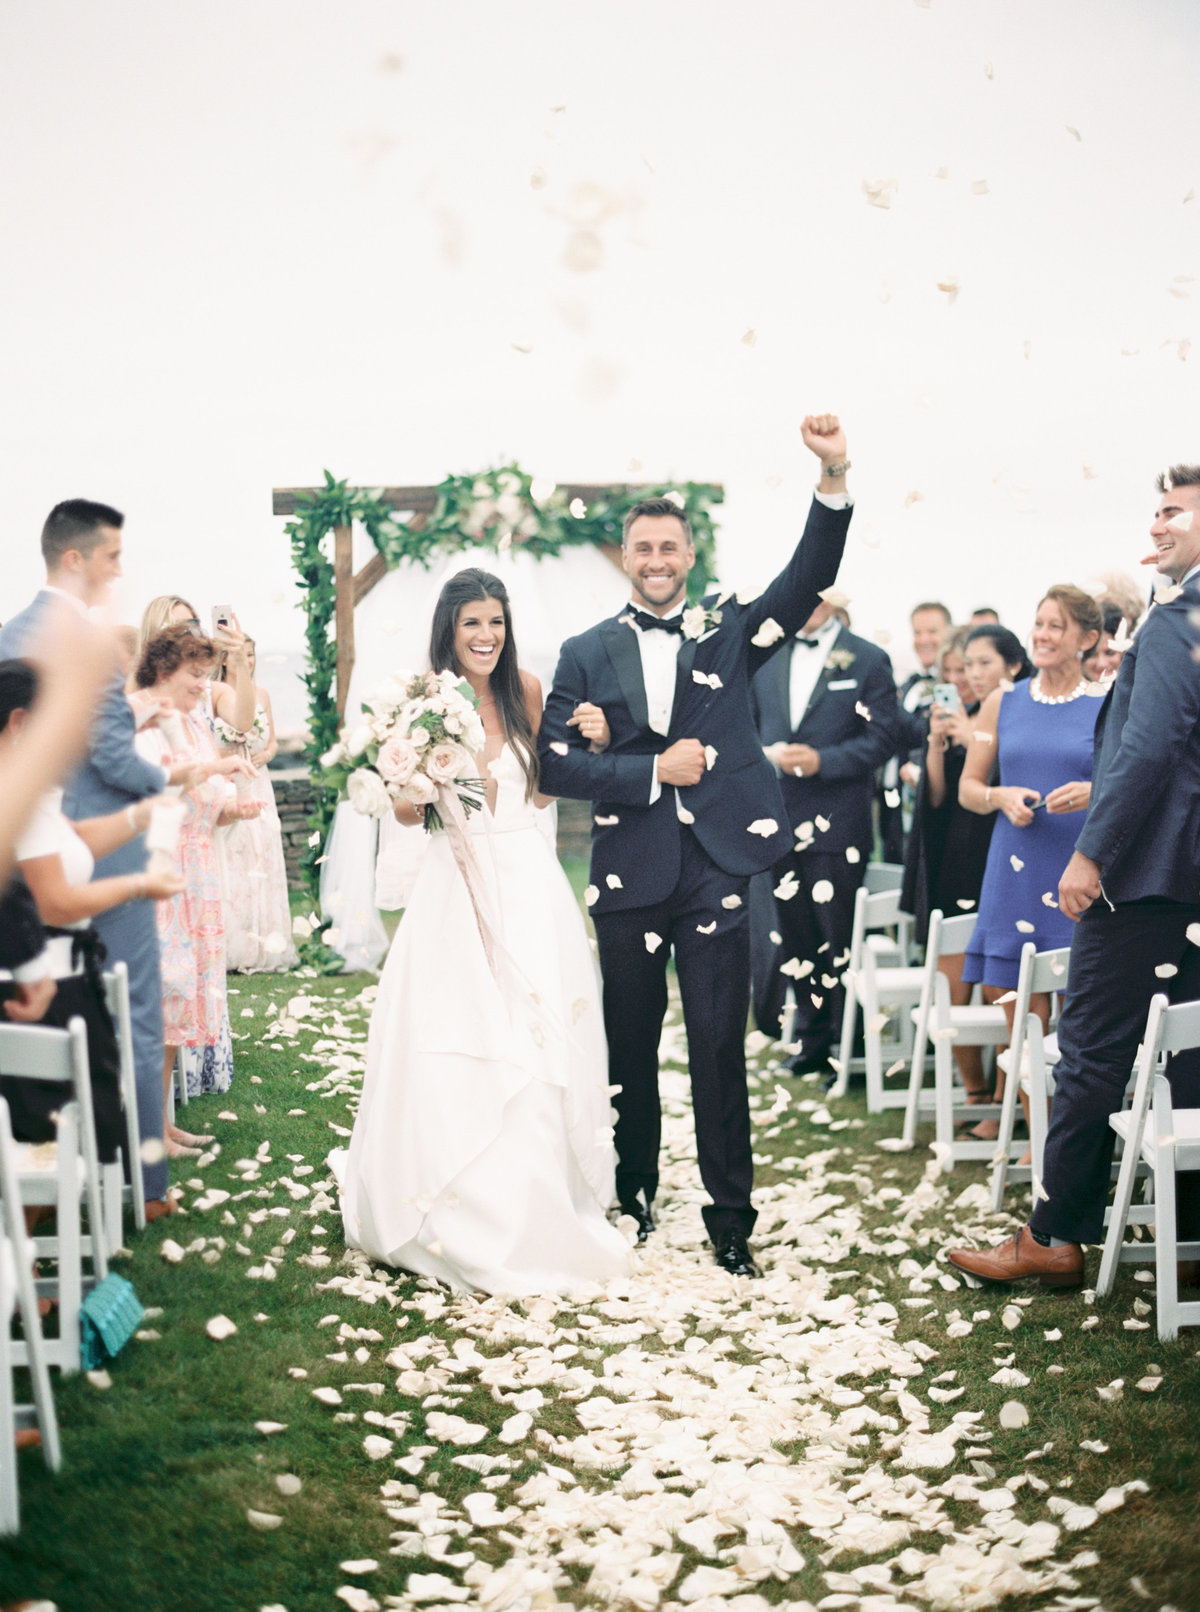 Rose petal recessional at Wychmere Beach Club